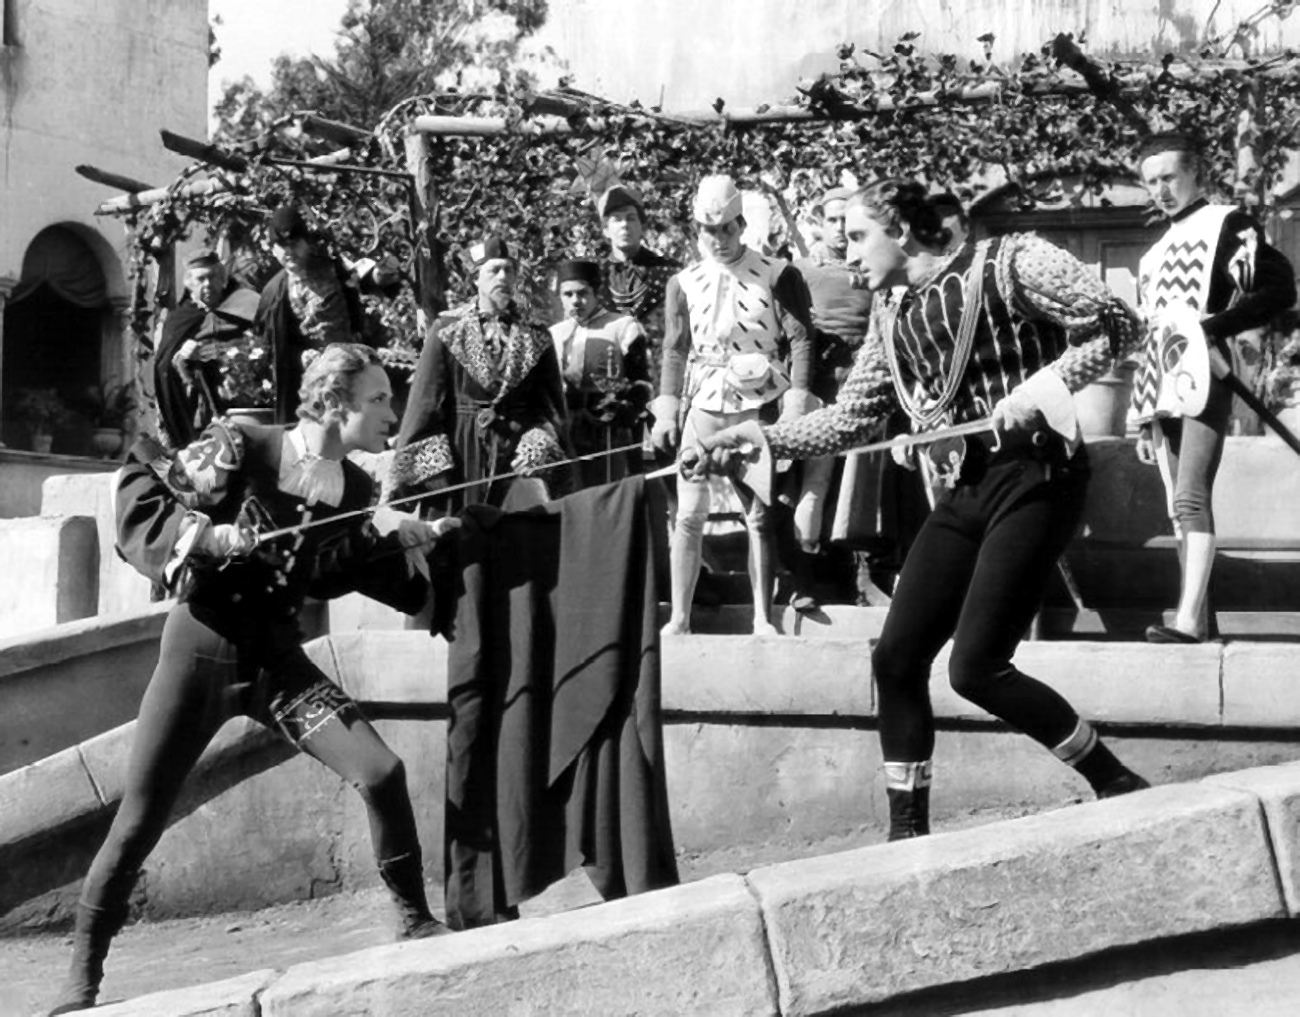 Leslie Howard in Romeo and Juliet With Basil Rathbone (R foreground)